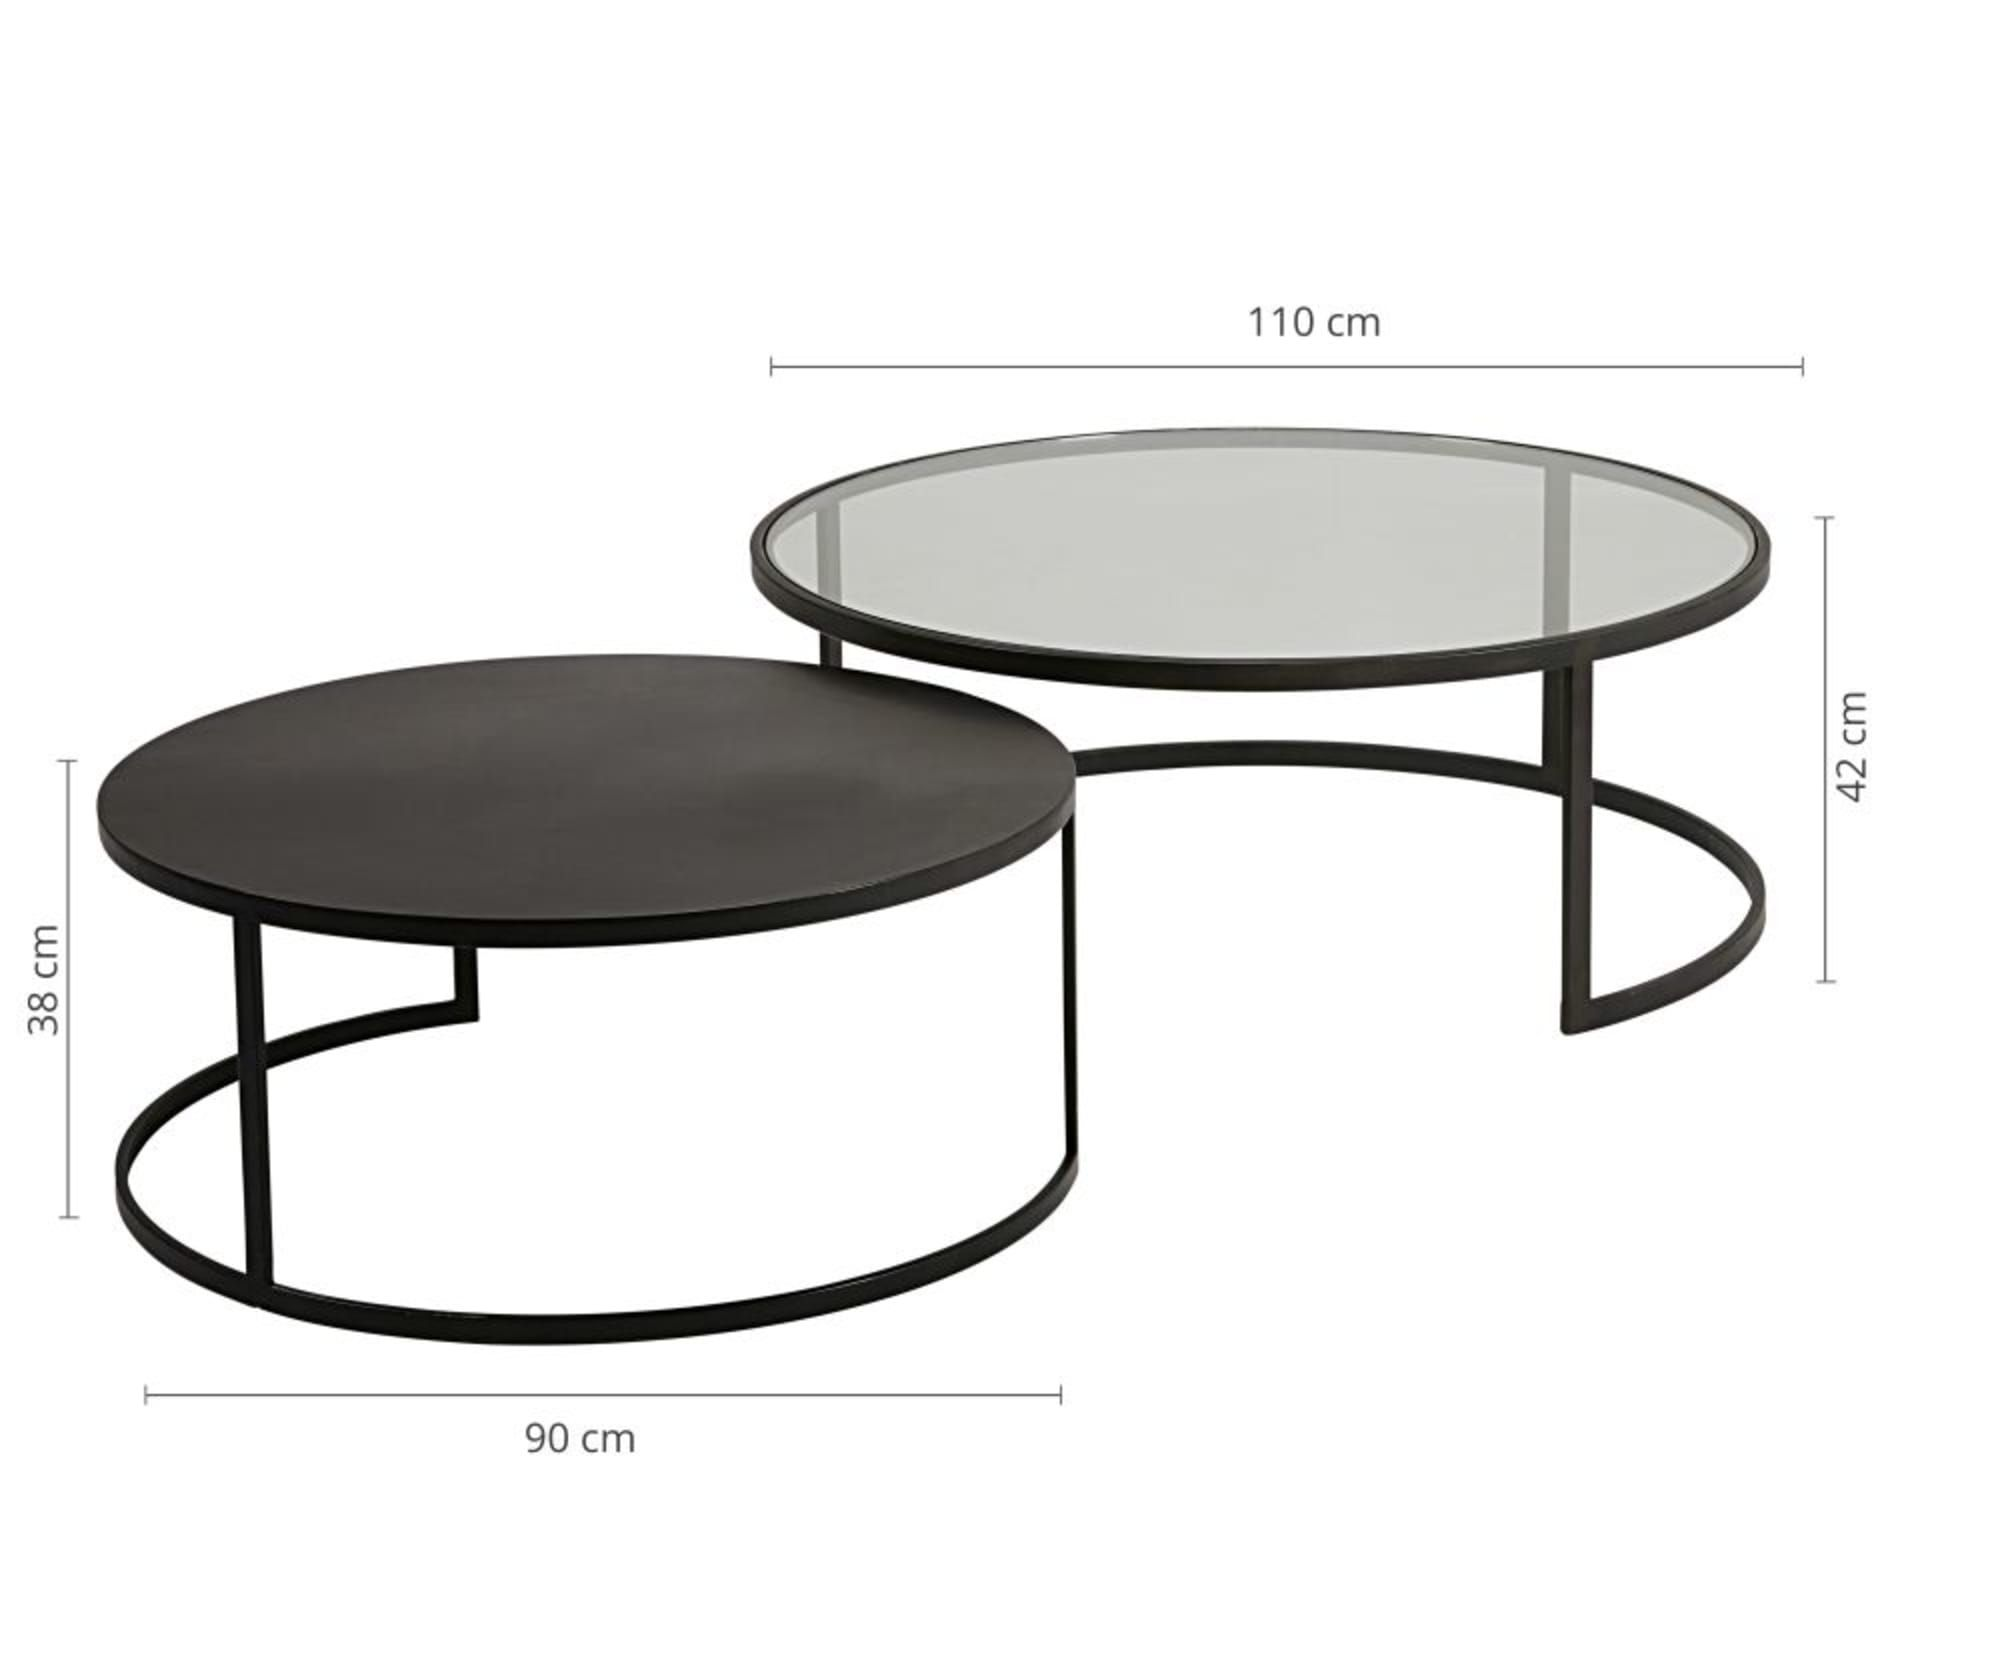 3 Pcs Oval Glass Cocktail Coffee Table Round End Side Silver Metal Chrome Base 3perfectchoice Contemp Coffee Table End Table Set Coffee Table Glass Table Set [ 1000 x 1000 Pixel ]